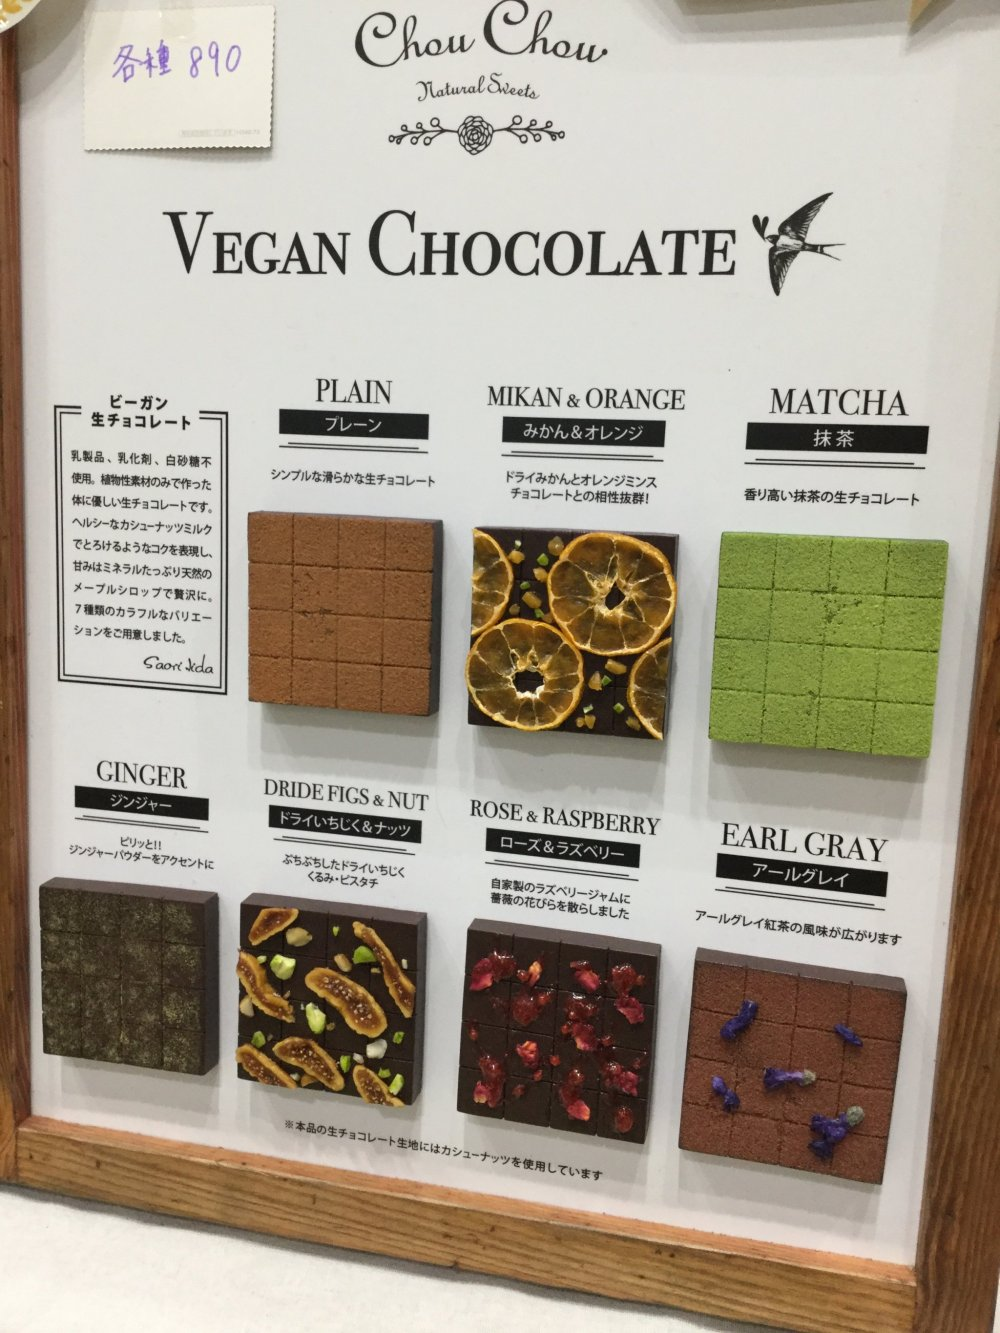 Vegan chocolate that look like artistic tiles.